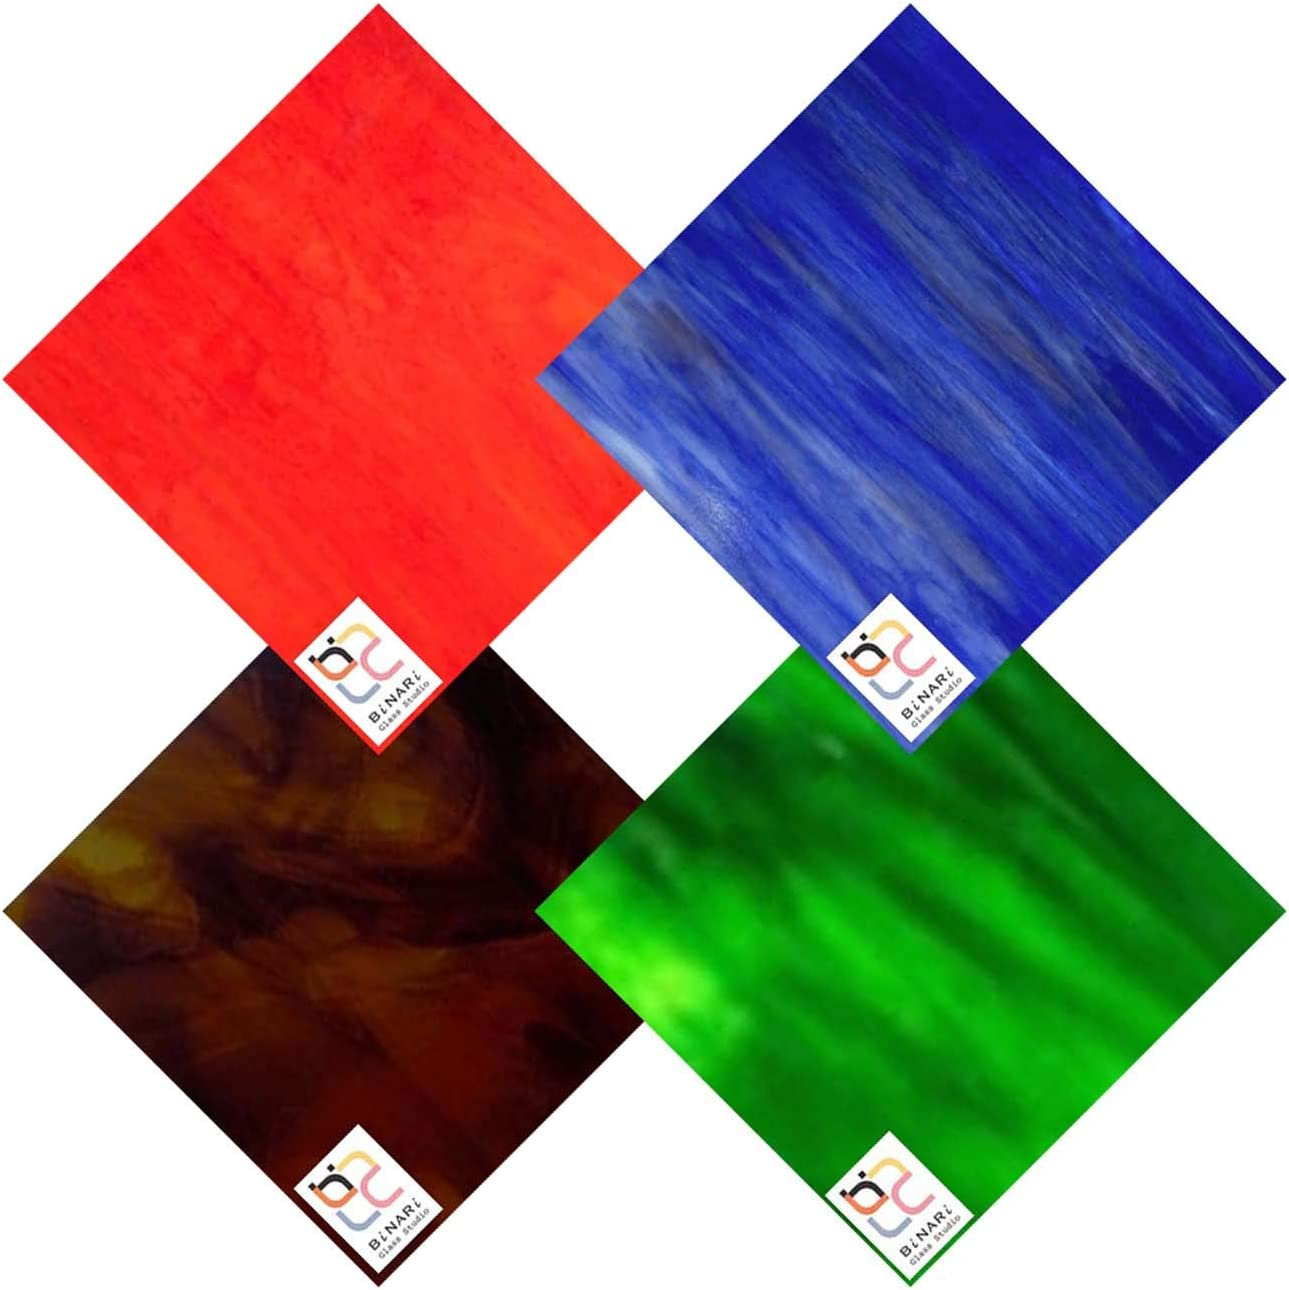 Wissmach 4 Sheet Mixed Color Max 77% OFF New product!! Variety Stained Orange Pack Glass